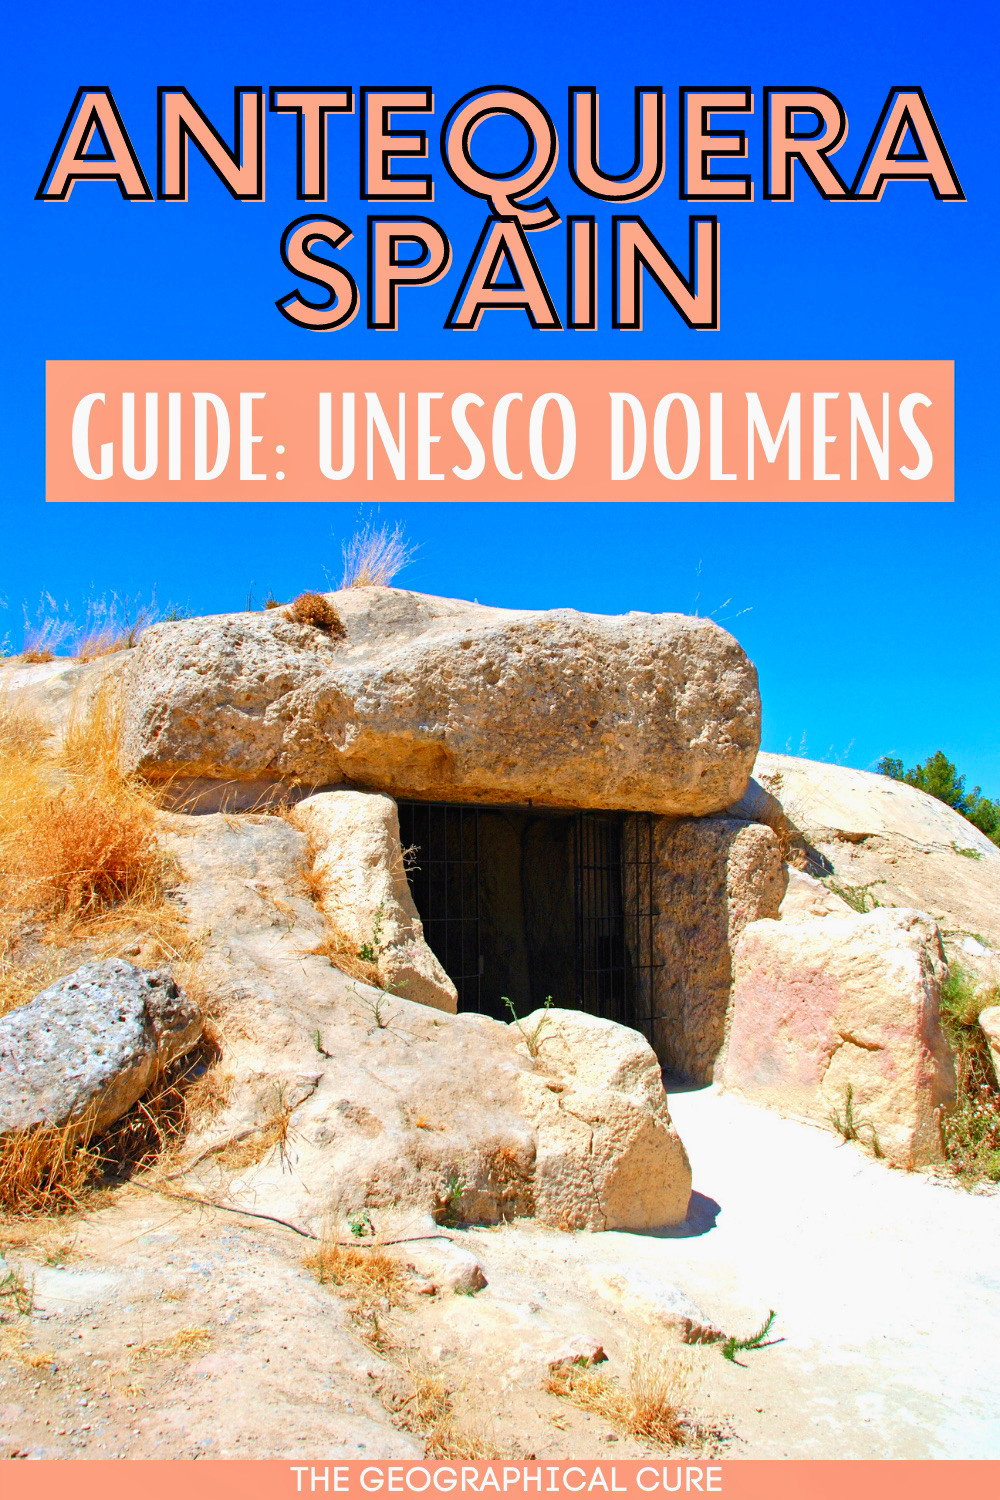 guide to the UNESCO-listed dolmens of Antequera, a must see site in southern Spain